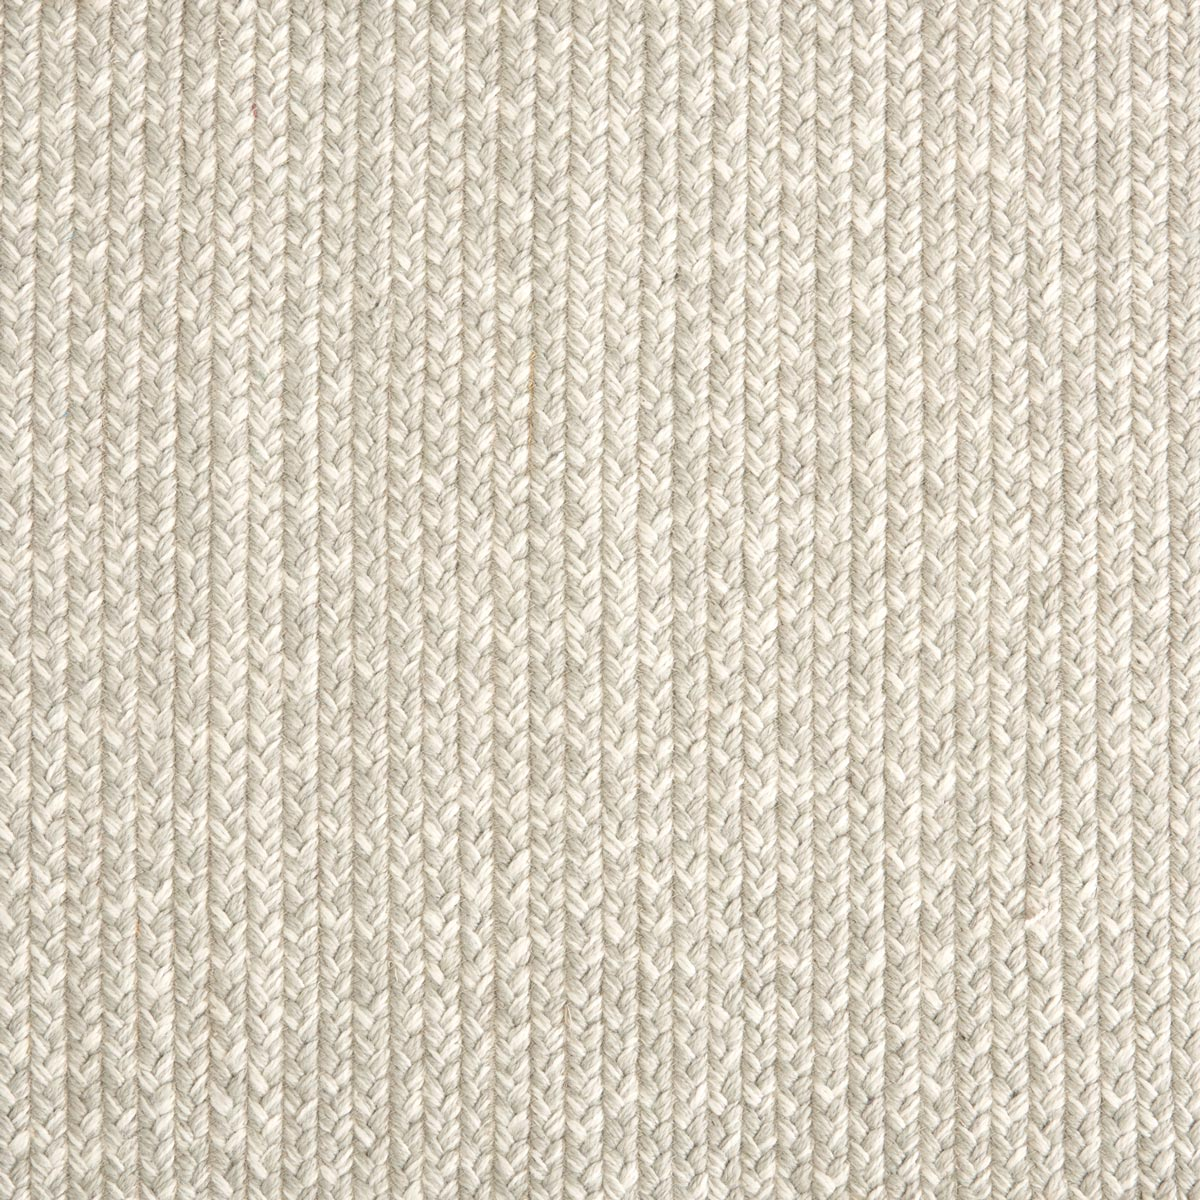 superior-bay_polysilk_broadloom_patterson-flynn-martin_pfm